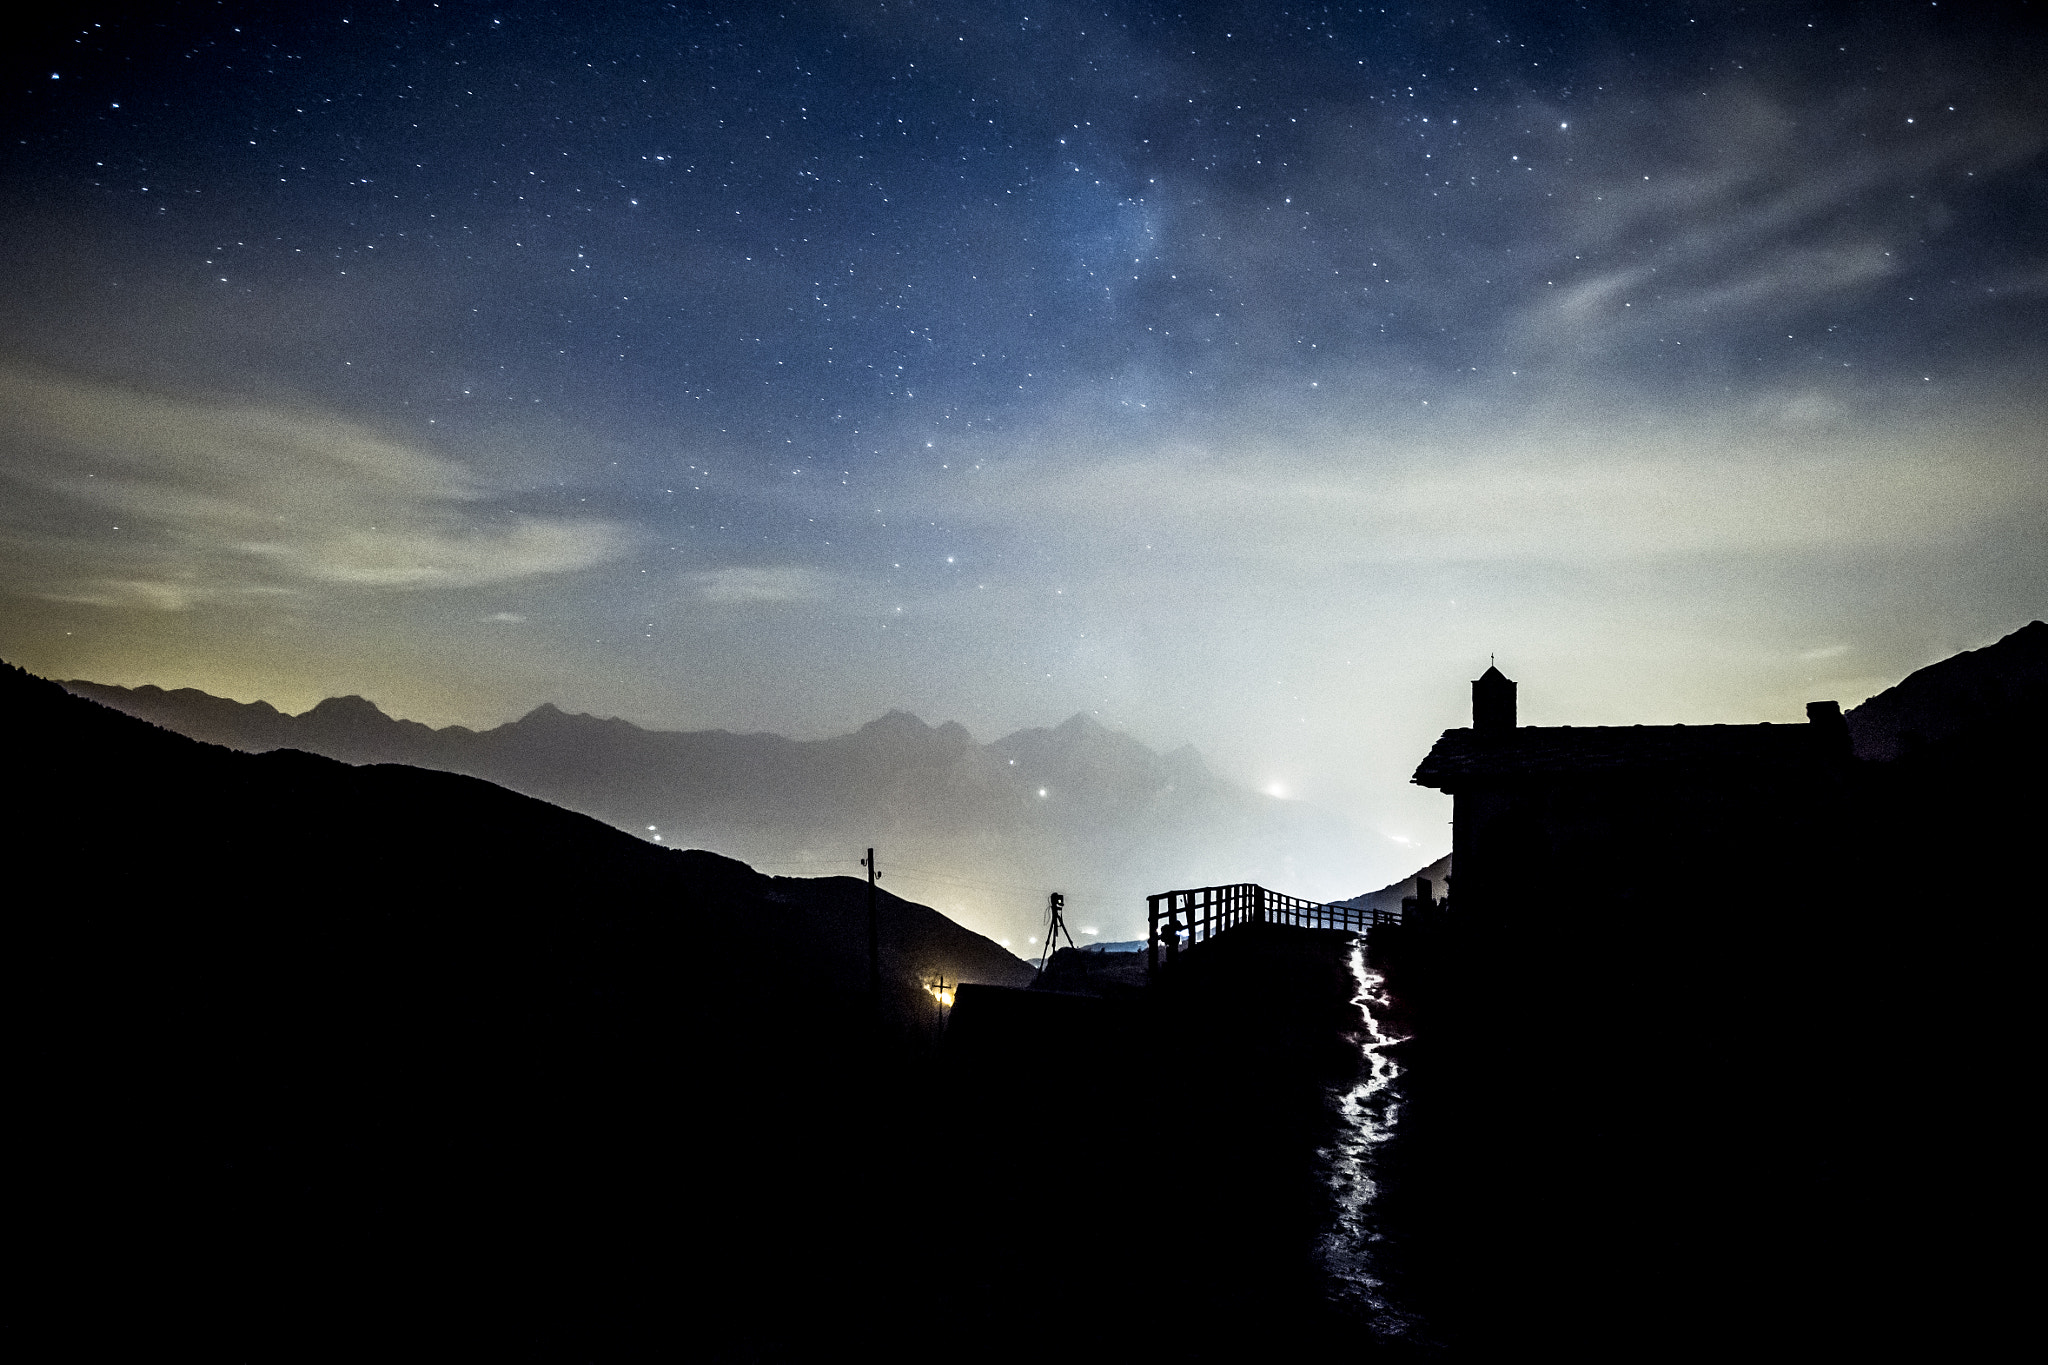 Photograph Quite Night by Elena Colombo on 500px